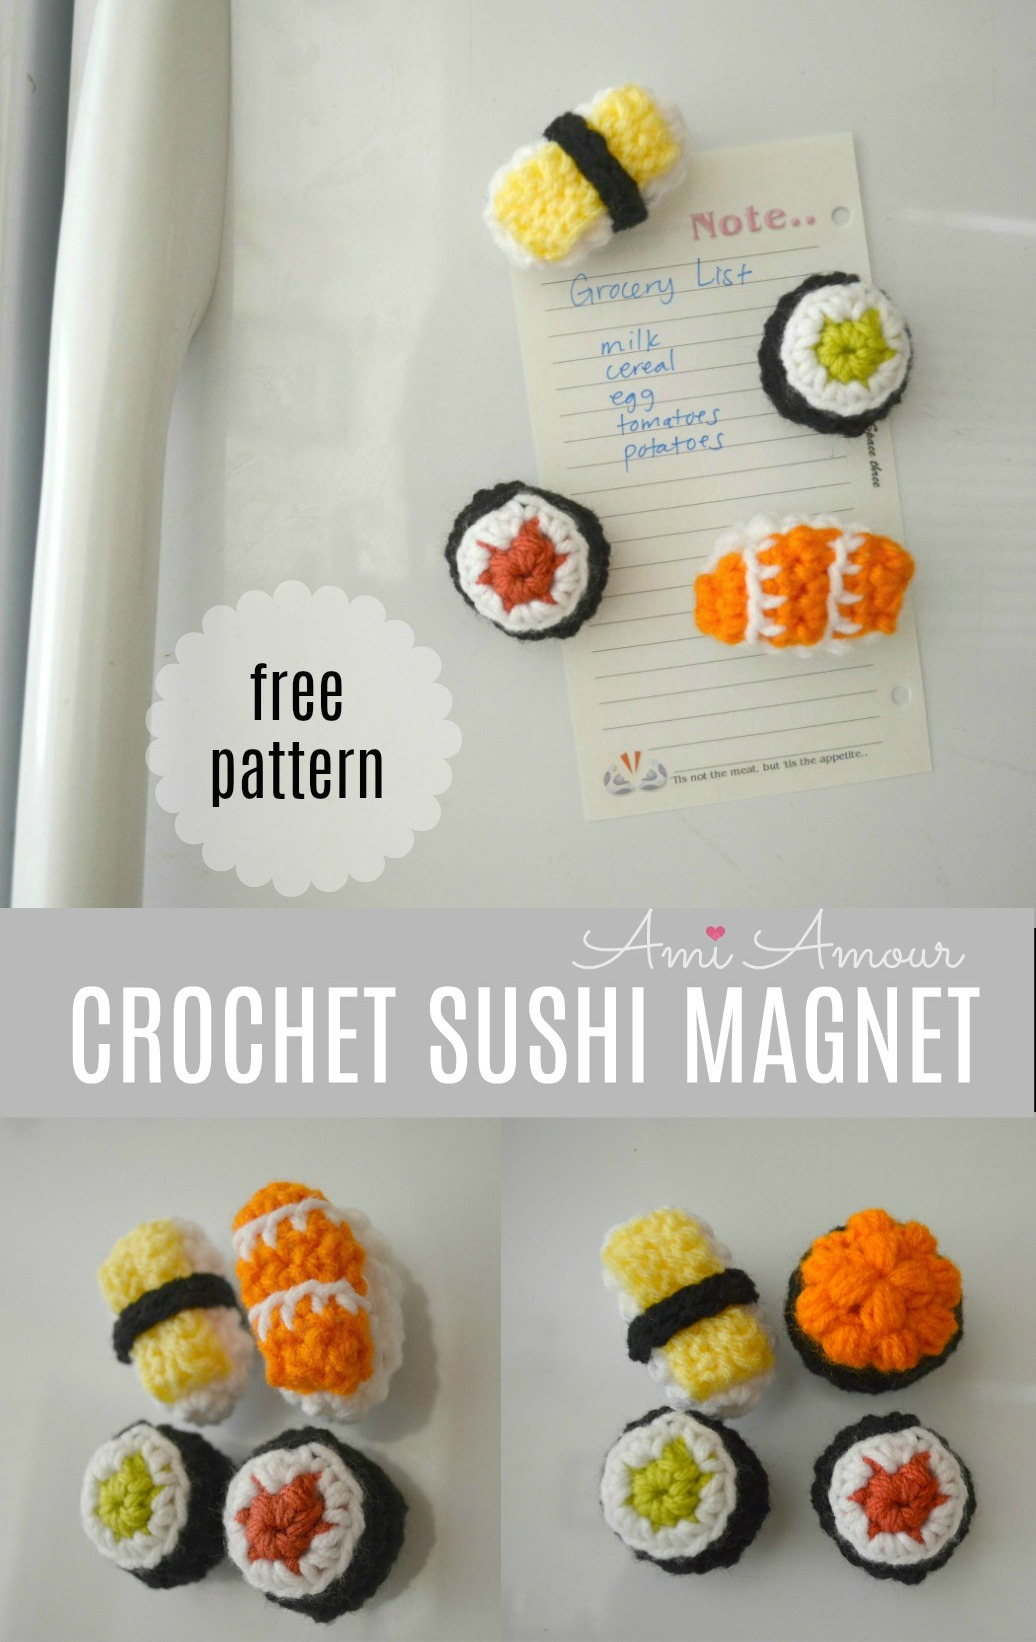 Crochet Sushi Magnets Free Pattern